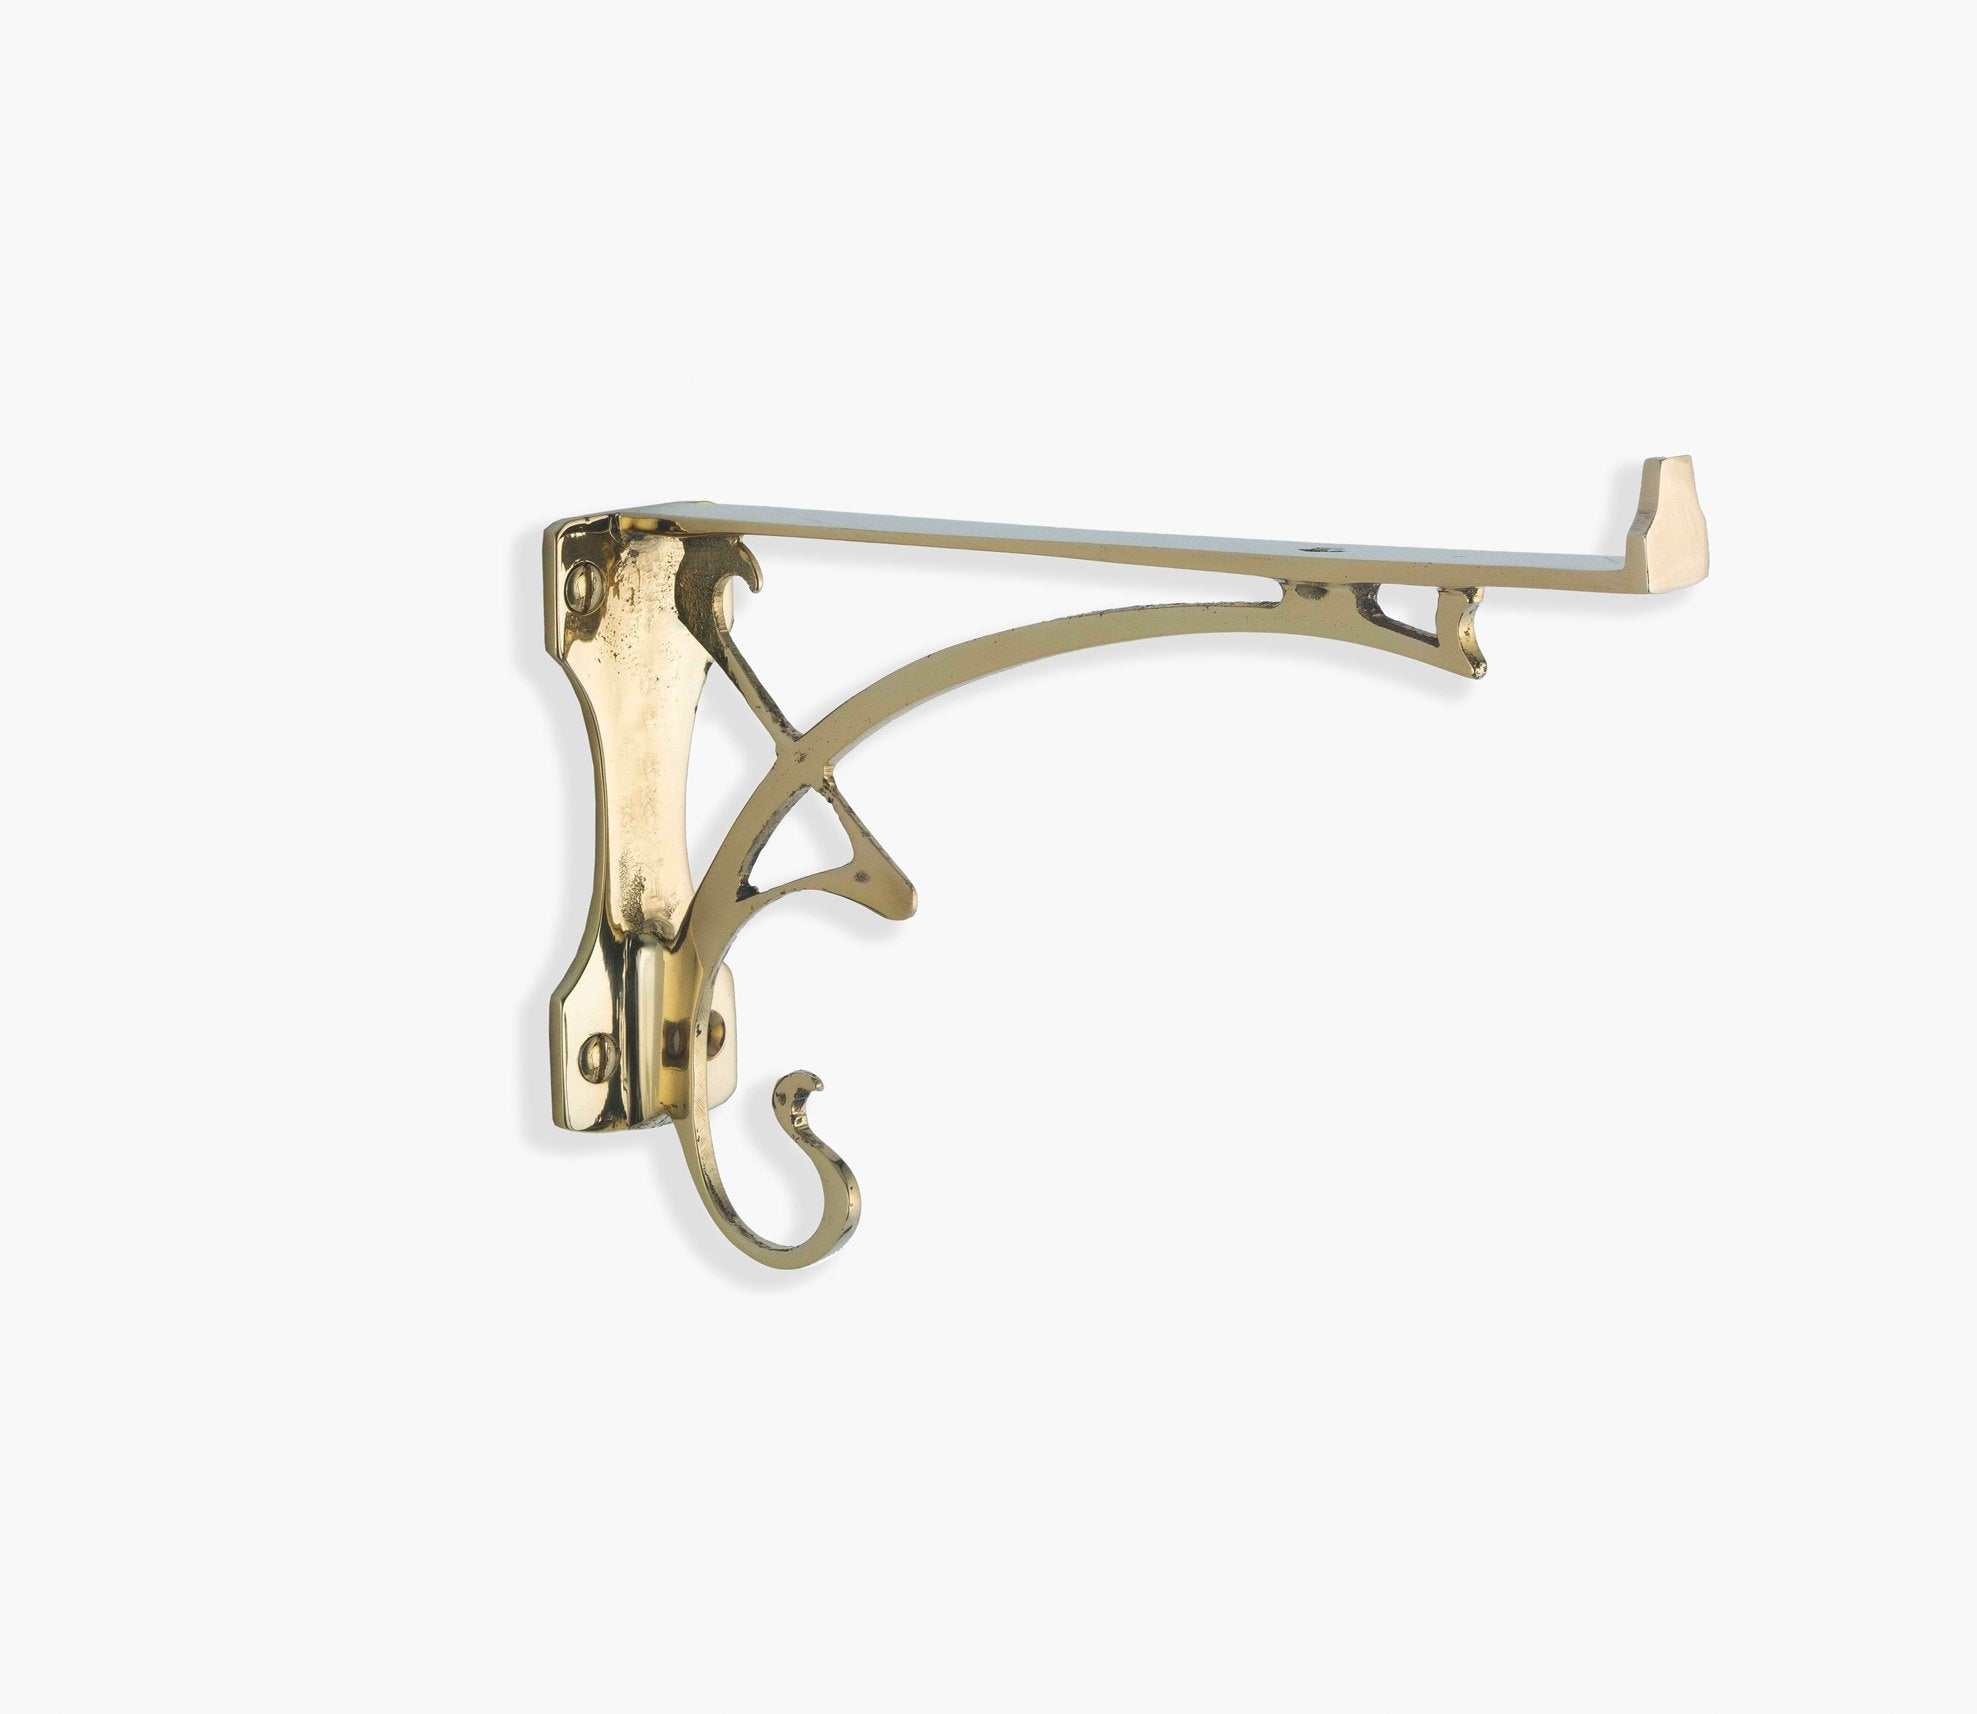 Shelf Bracket 031 Product Image 1